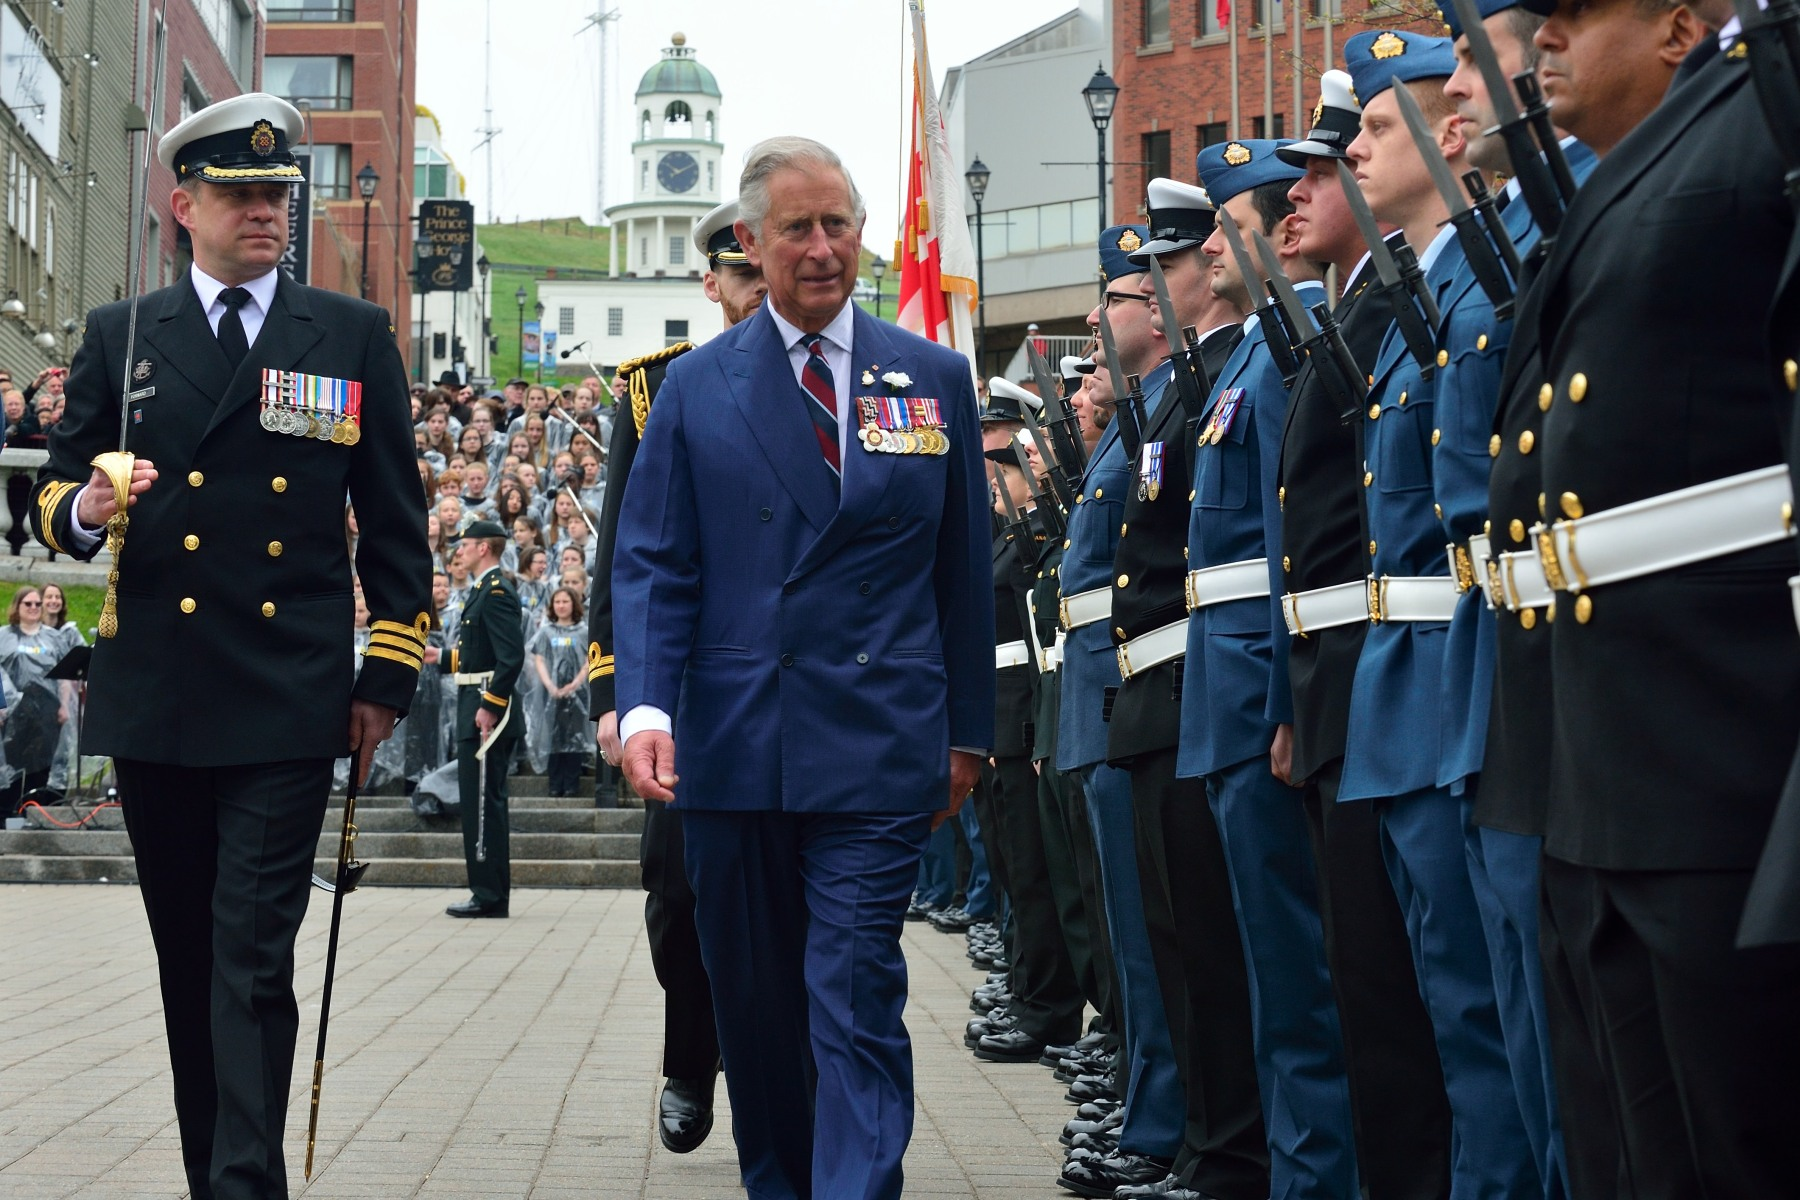 The ceremony featured full military honours including a 21-gun salute and the breaking of His Royal Highness's Canadian Flag.